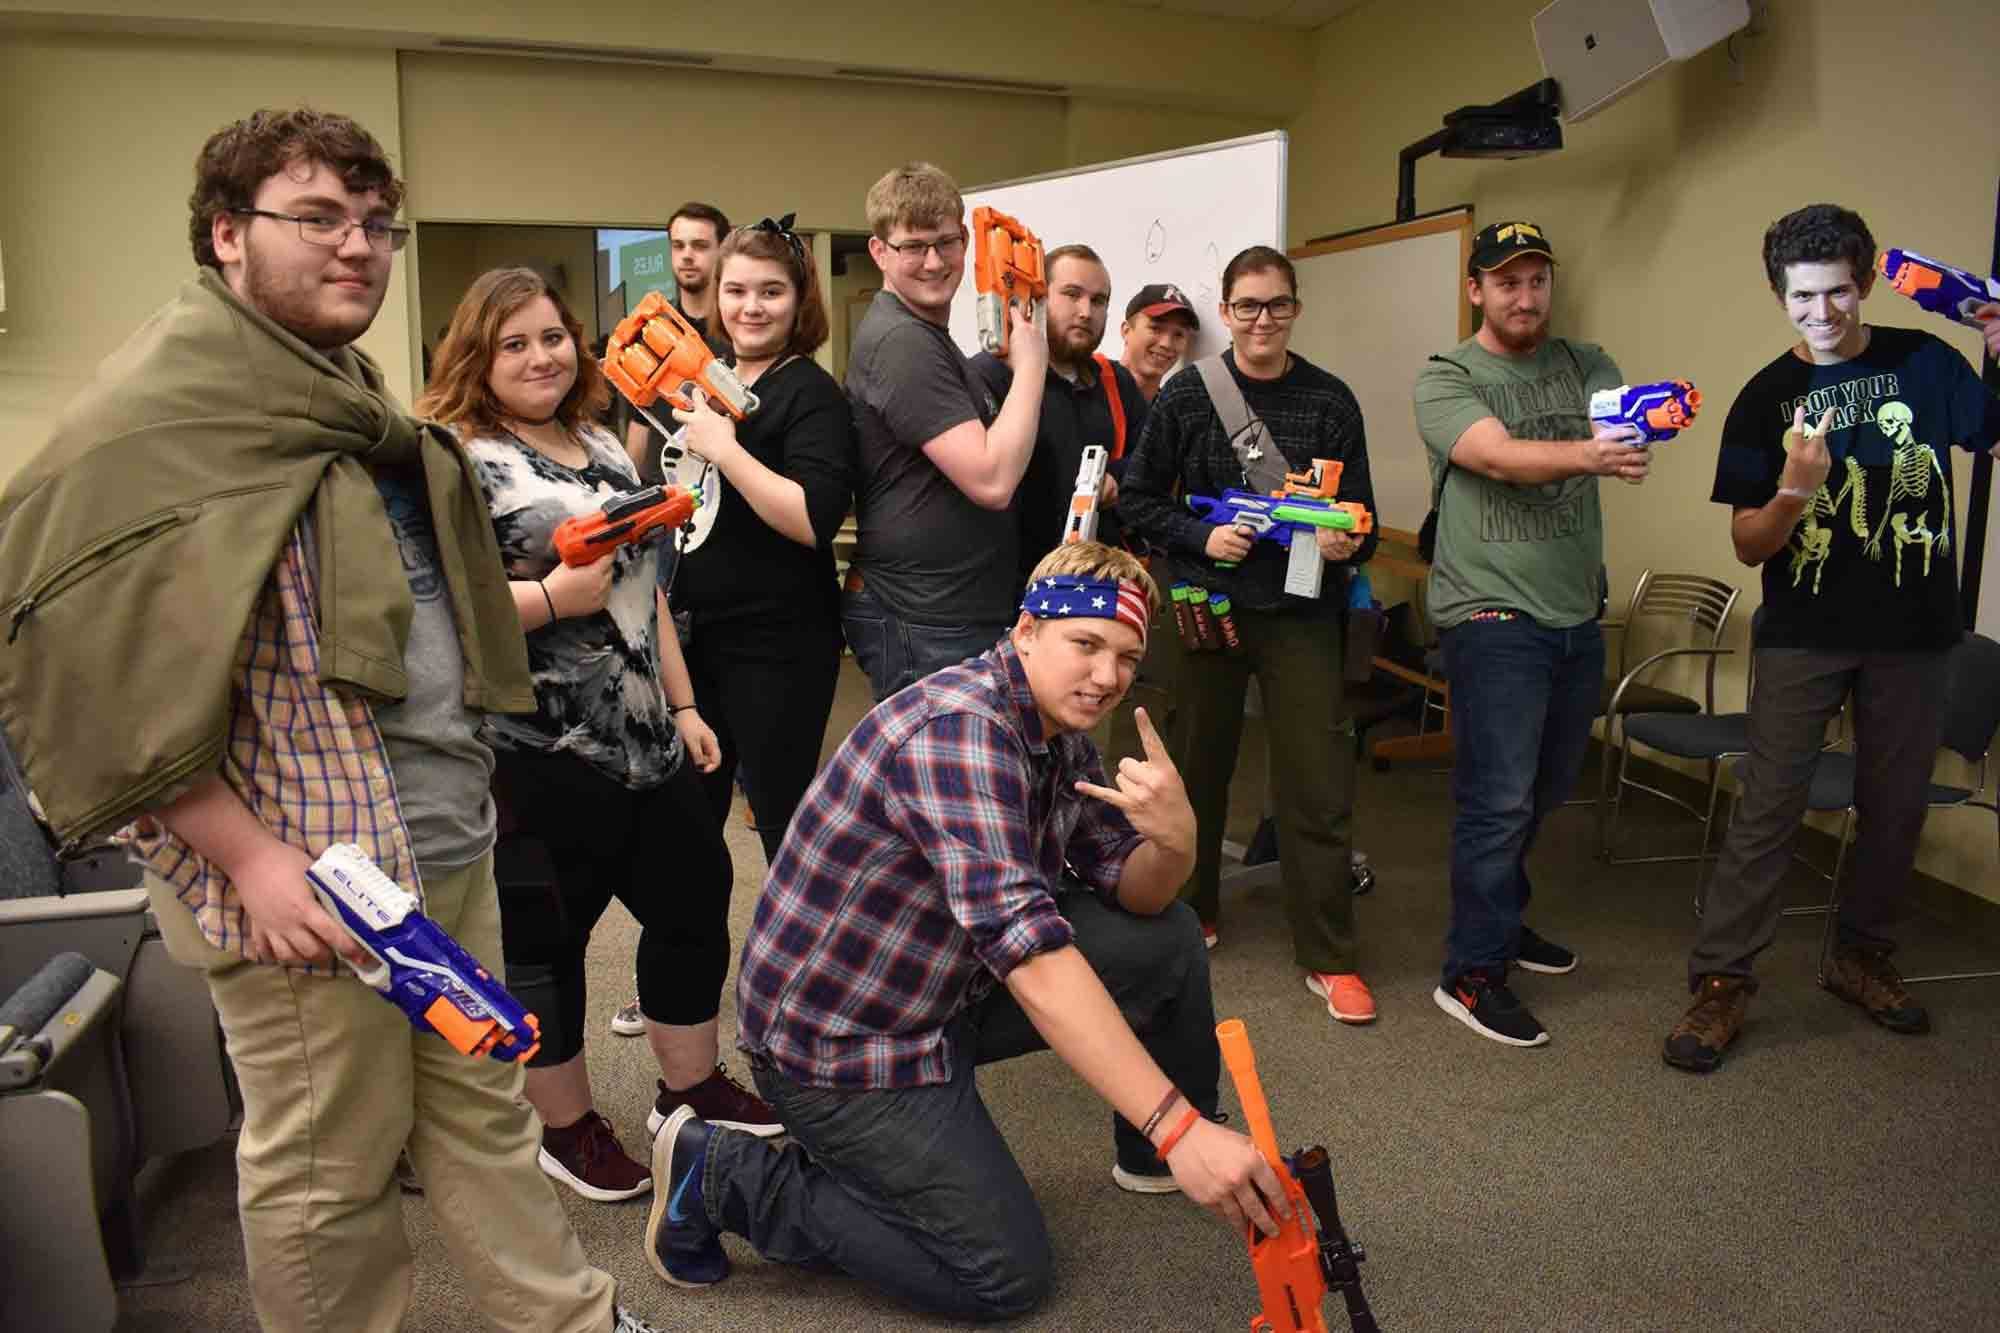 Paricipants gear up as they prepare for the Humans vs. Zombies battle in the Belk Library and Information Commons.